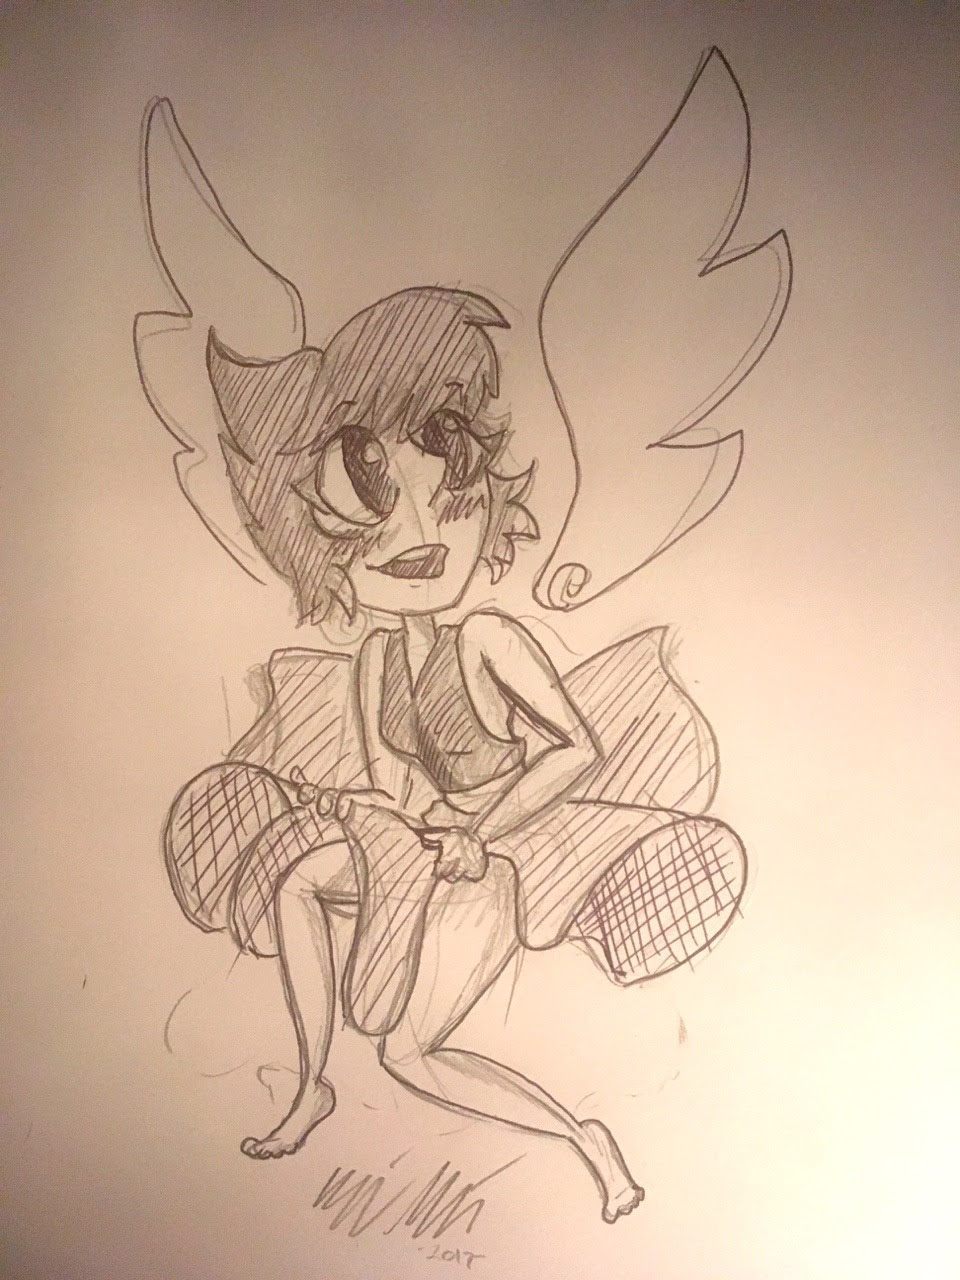 Quick pen and pencil no erase Lapis doodle while in the car on my lunch at work.